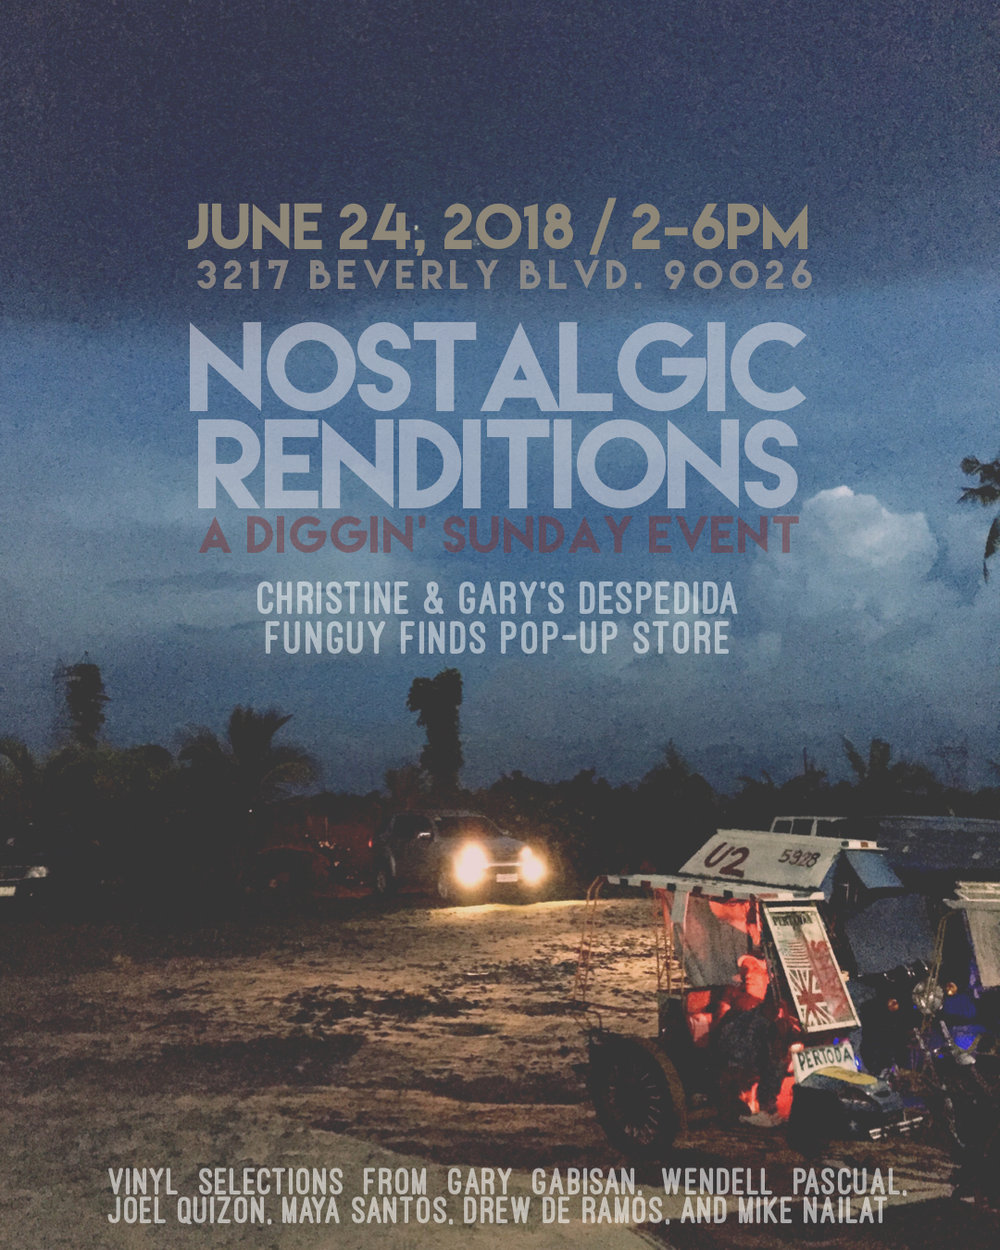 Nostalgic Renditions: A Diggin' Sunday Event  The theme of Nostalgia in 2018 represented through music and vintage artifacts.   This is also a special despedida event for  Christine Bacareza Balance (scholar and author of Tropical Renditions) and  Gary Gacula Gabisan (filmmaker, musician, artist) as we wish them luck on their move to the East Coast.  Featuring: - A special   FUNGUY FINDS    POP-UP STORE  featuring vintage merchandise and retro-inspired plantlife arrangements curated and designed by  Wendell Pascual . - Featuring DJ's from   DIGGIN' SUNDAY  (the original Historic Filipinotown afternoon chillspot):  Gary Gabisan/ un-g (P.I.C., The Jack Lords Orchestra, Raket & Rambol)  Wendell Pascual/ asceticfish (Funguy Finds, Aziatic Rhythmz)  Joel Quizon/ joelquiz (Disco Manila, Red Key Experiment, Raket & Rambol)  Maya Santos/ equanimous1 (Soul In the Park, Rare Medium)  Drew de Ramos/ a growl translucent (The Miles Approach, Red Key Experiment)  Mike Nailat/ waxstyles (This Filipino American Life/Tuesday Night at the Cafe)